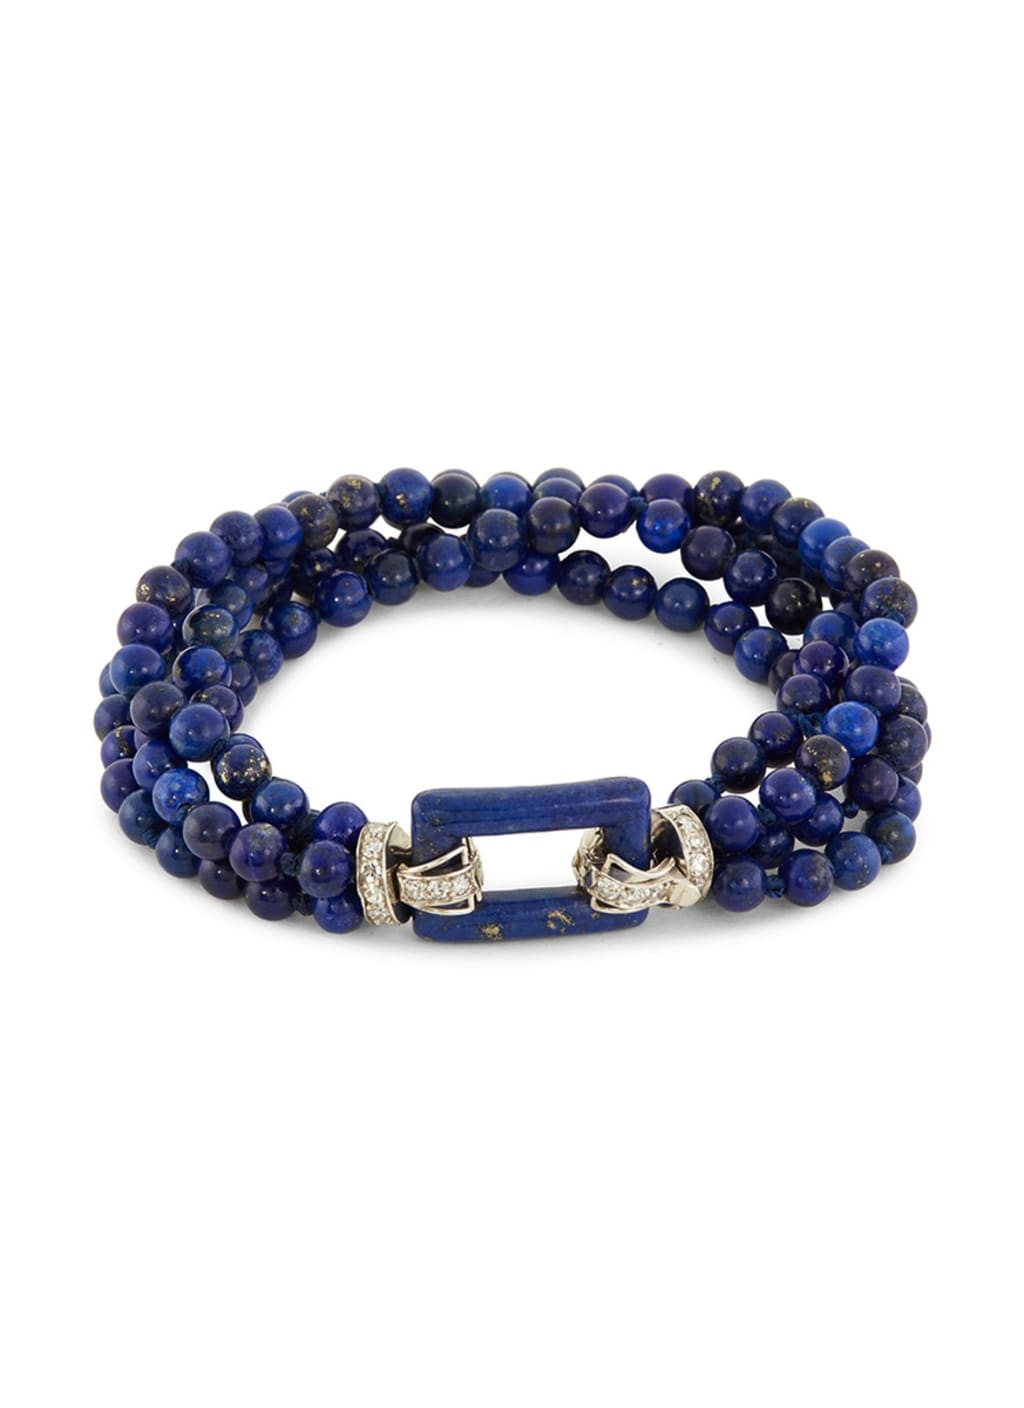 dcfdf520dbab56 Diamond lapis lazuli bead four row bracelet. LC COLLECTION JEWELLERY